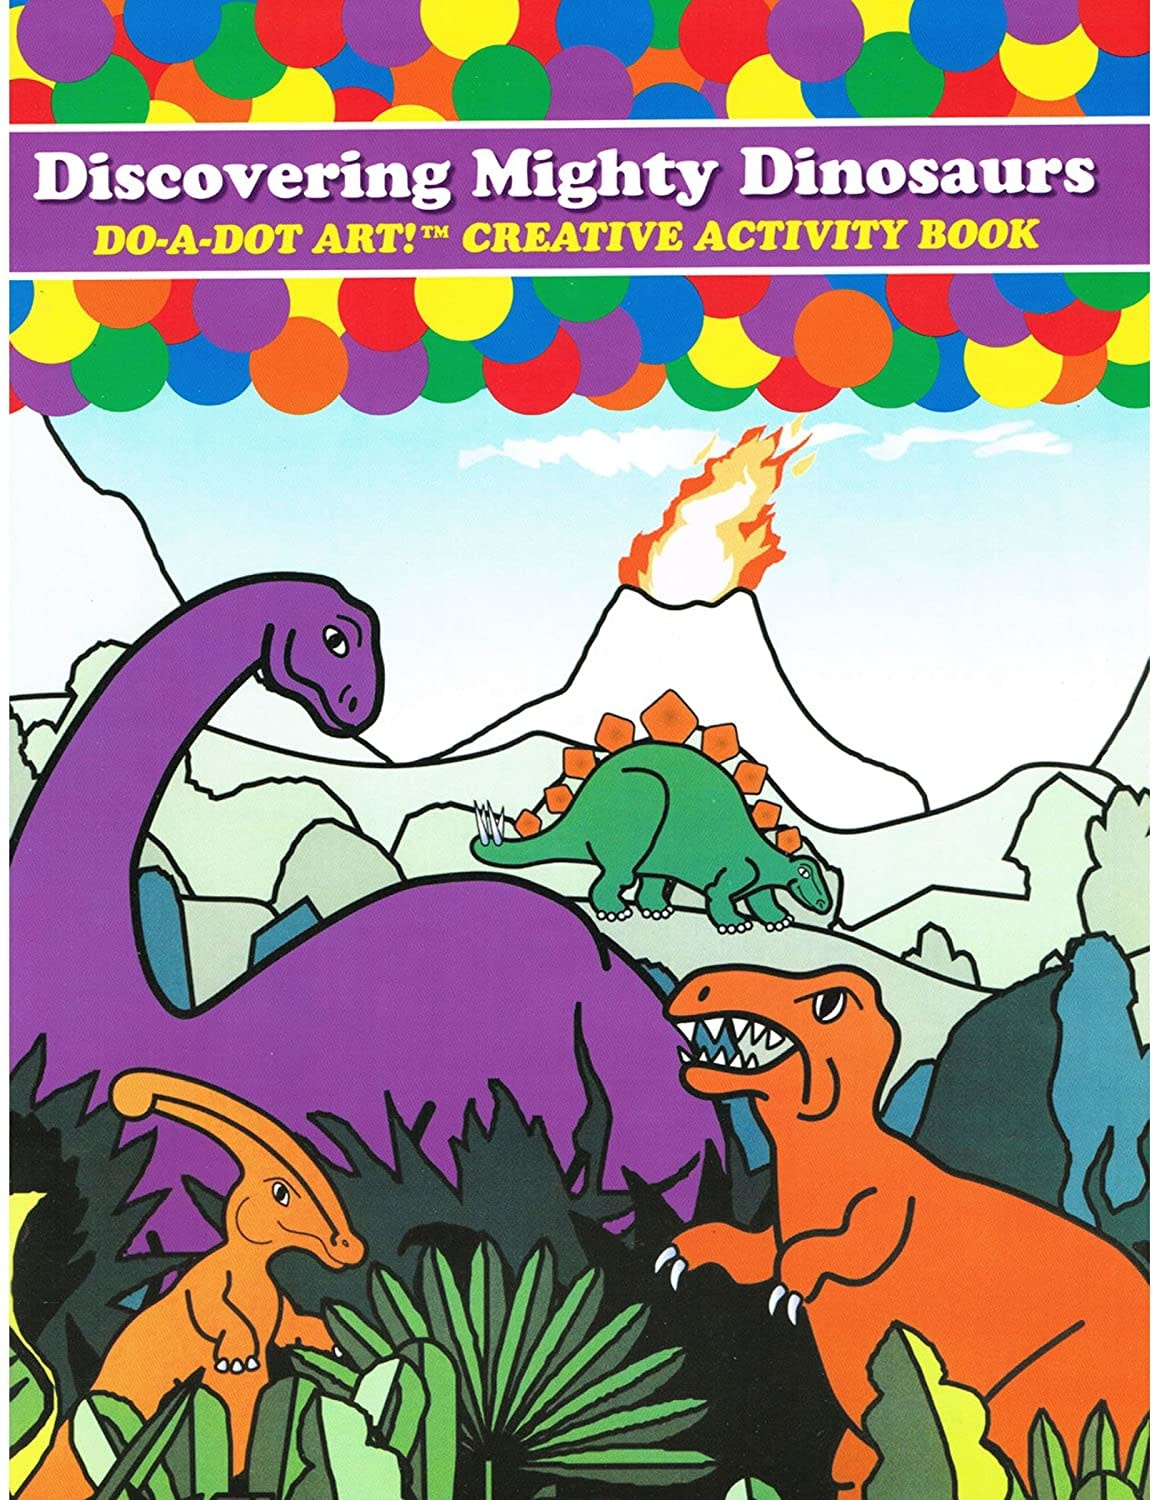 Discovering Dinosaurs Coloring Book-1